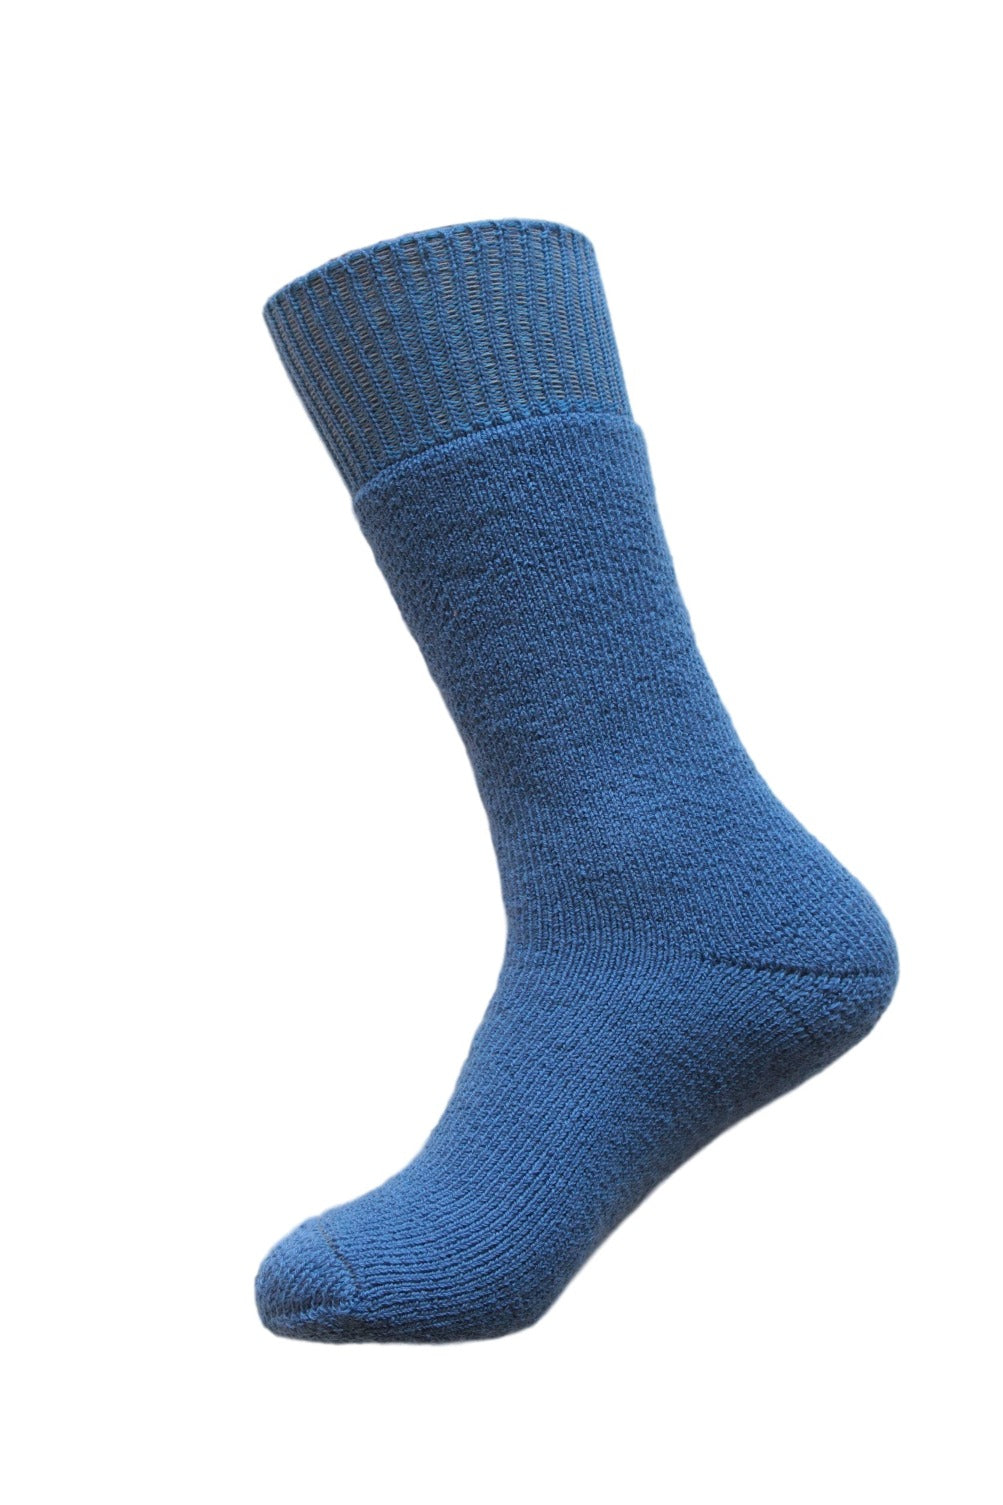 Australian Wool, Australian Made Thick Wool Socks - Mid Blue